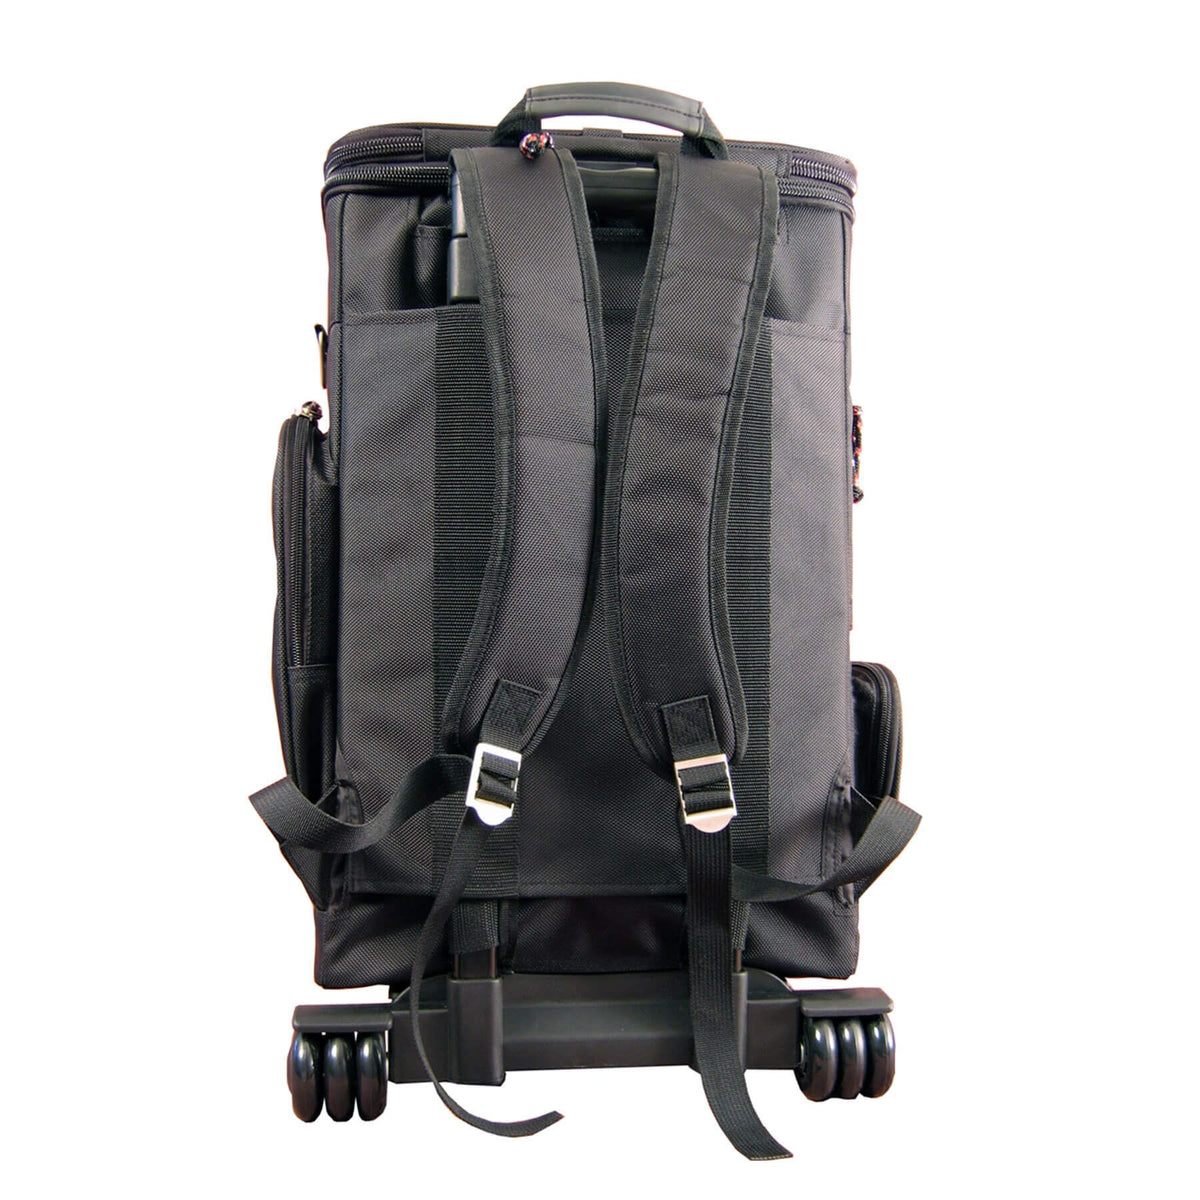 Gator Cases Gear & Laptop Backpack fits Korg AX3000G